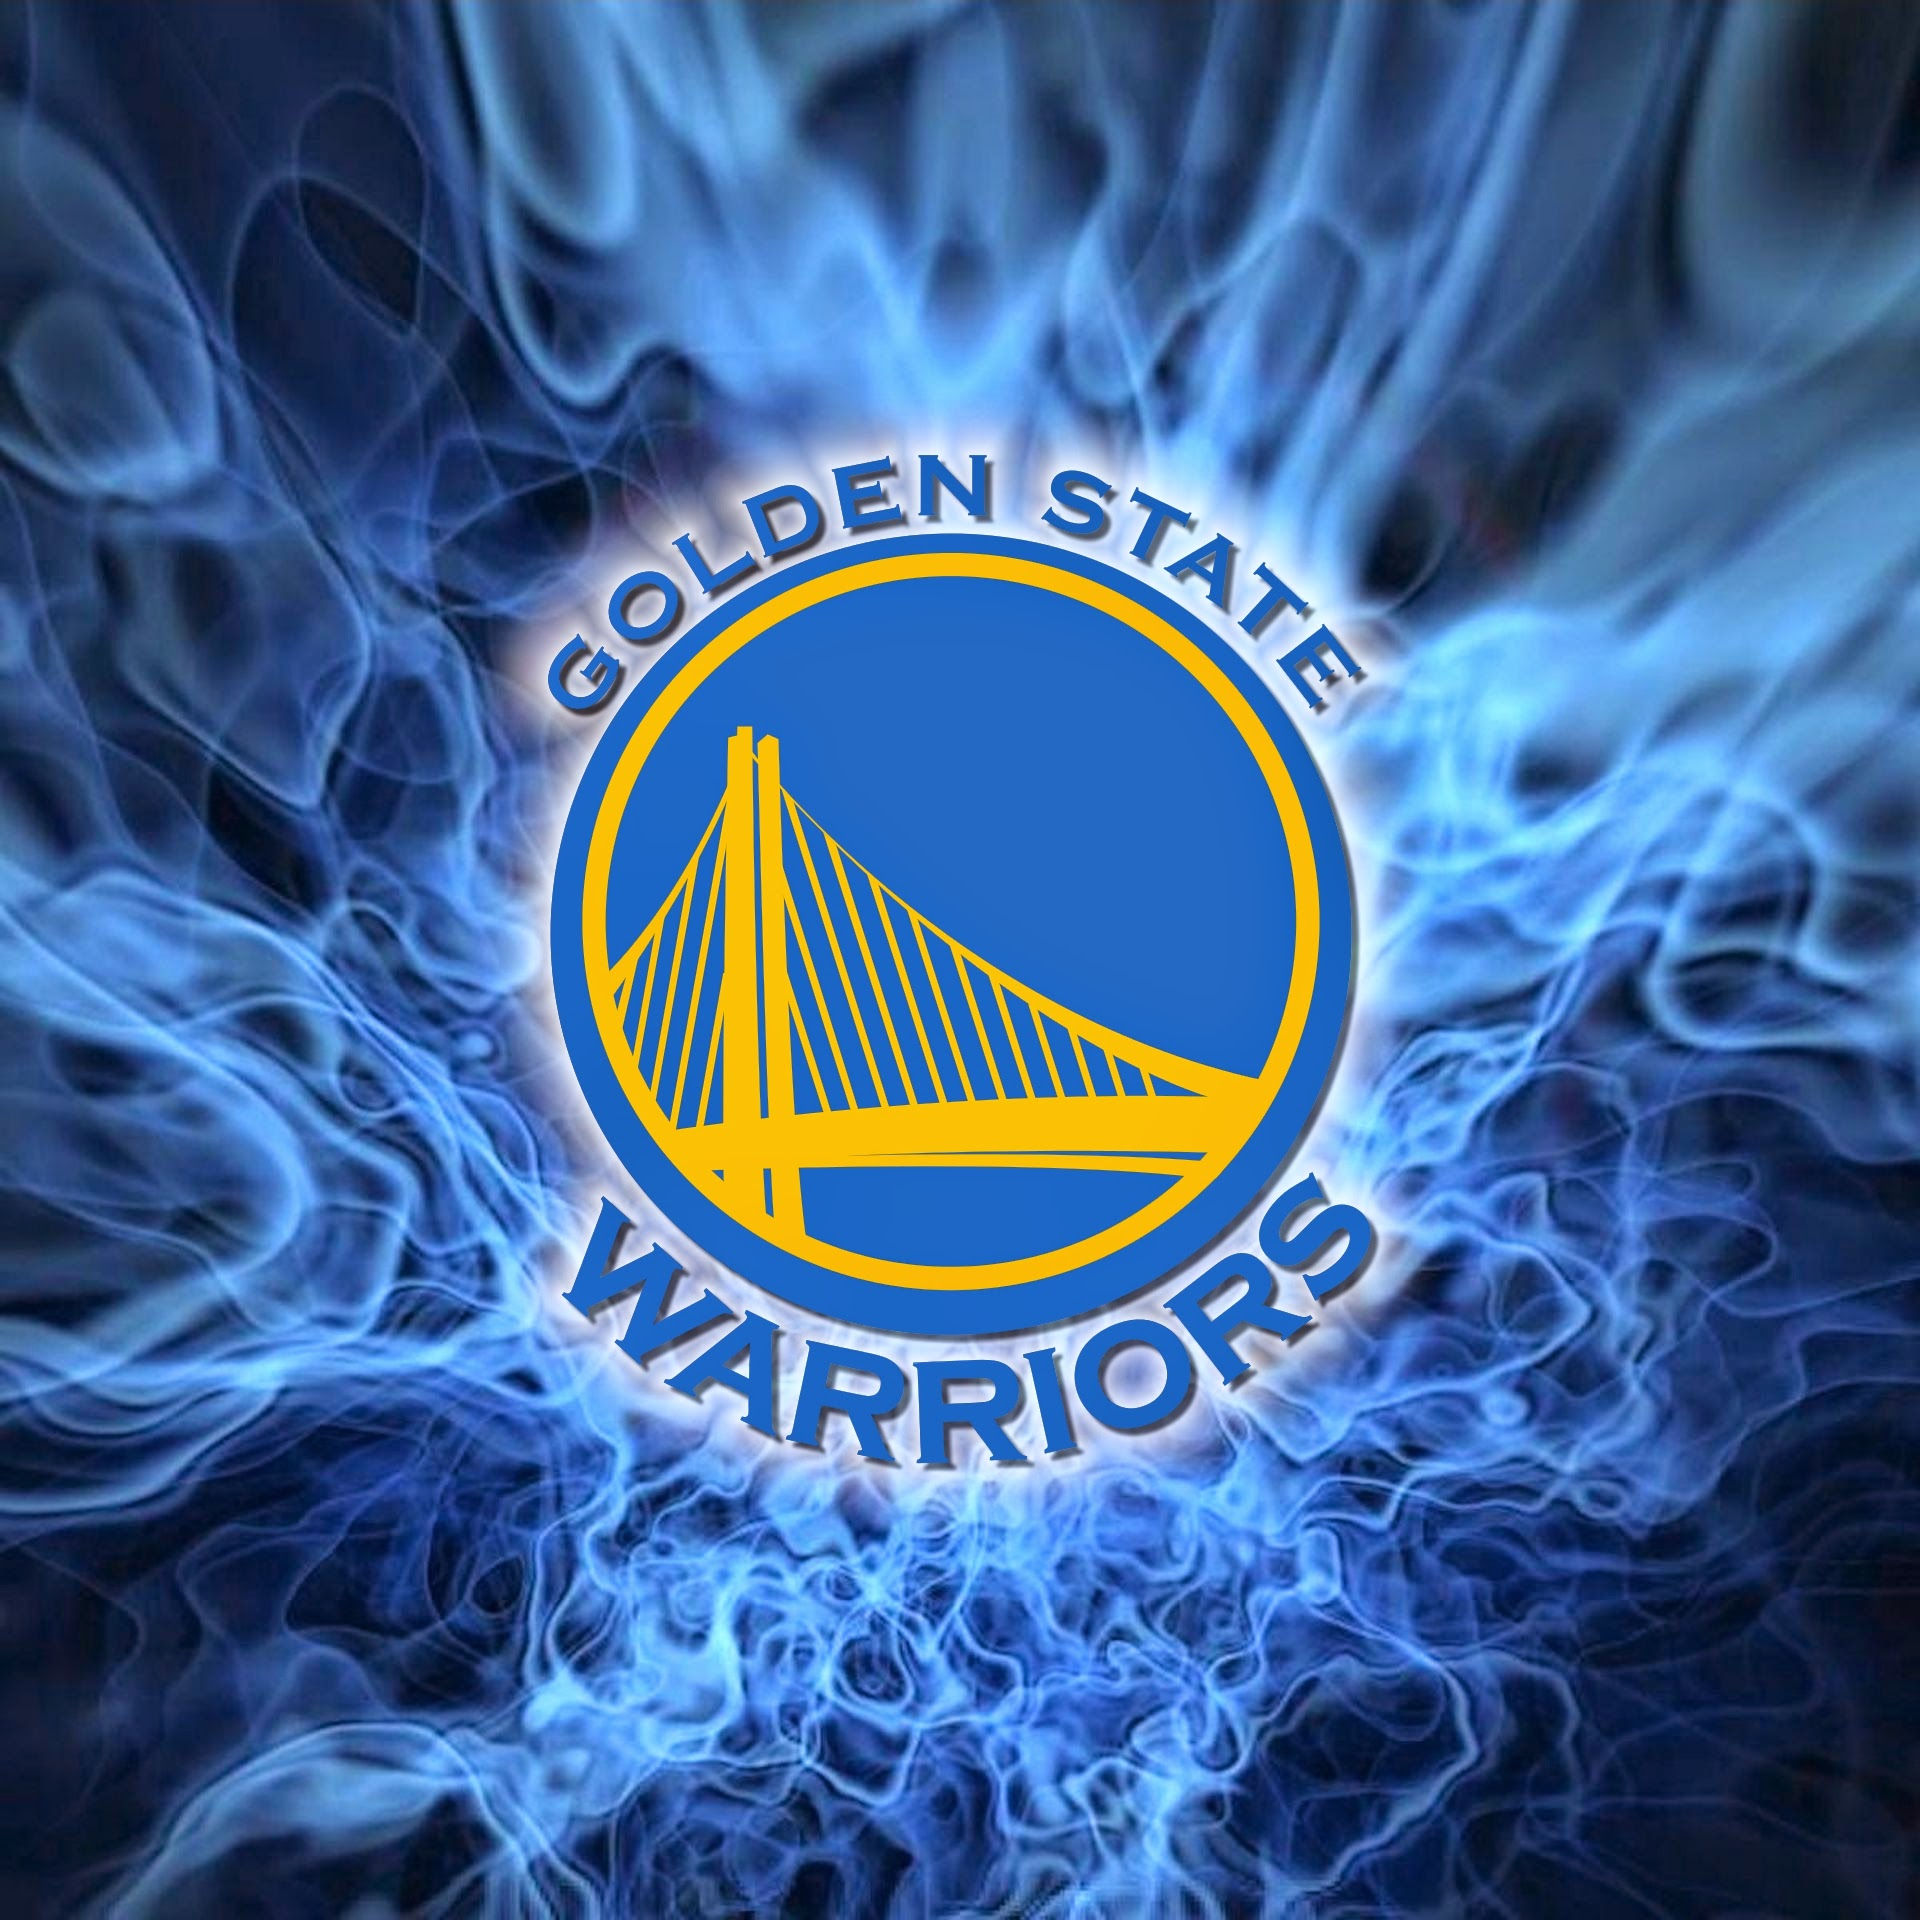 Golden State Warriors Wallpaper - Flames wallpaper by fatboy97 page 27 android forums at